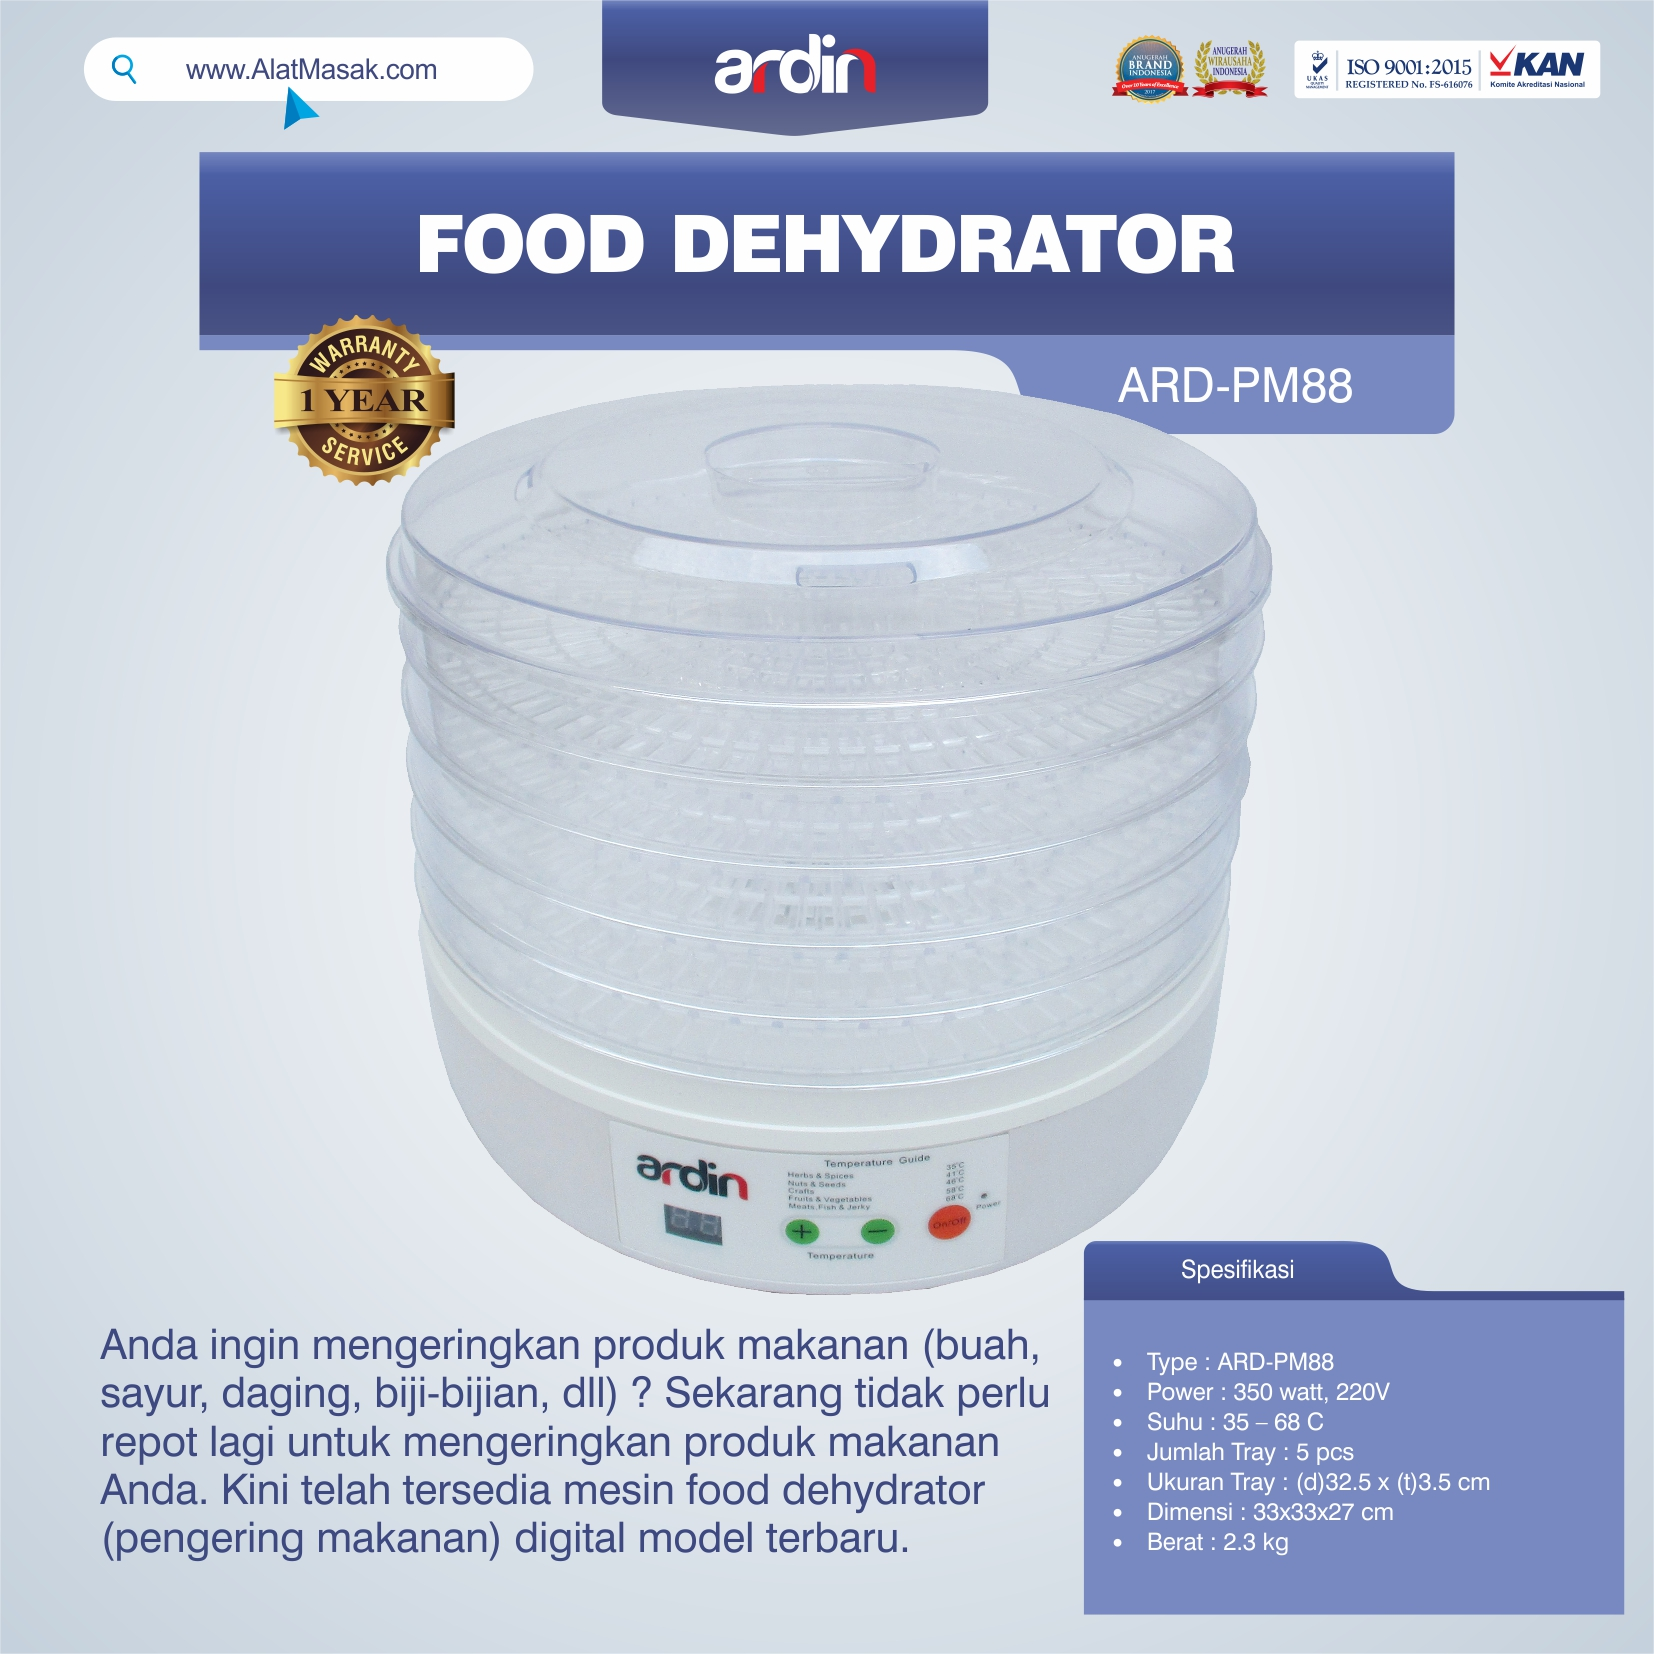 Food Dehydrator ARD-PM88